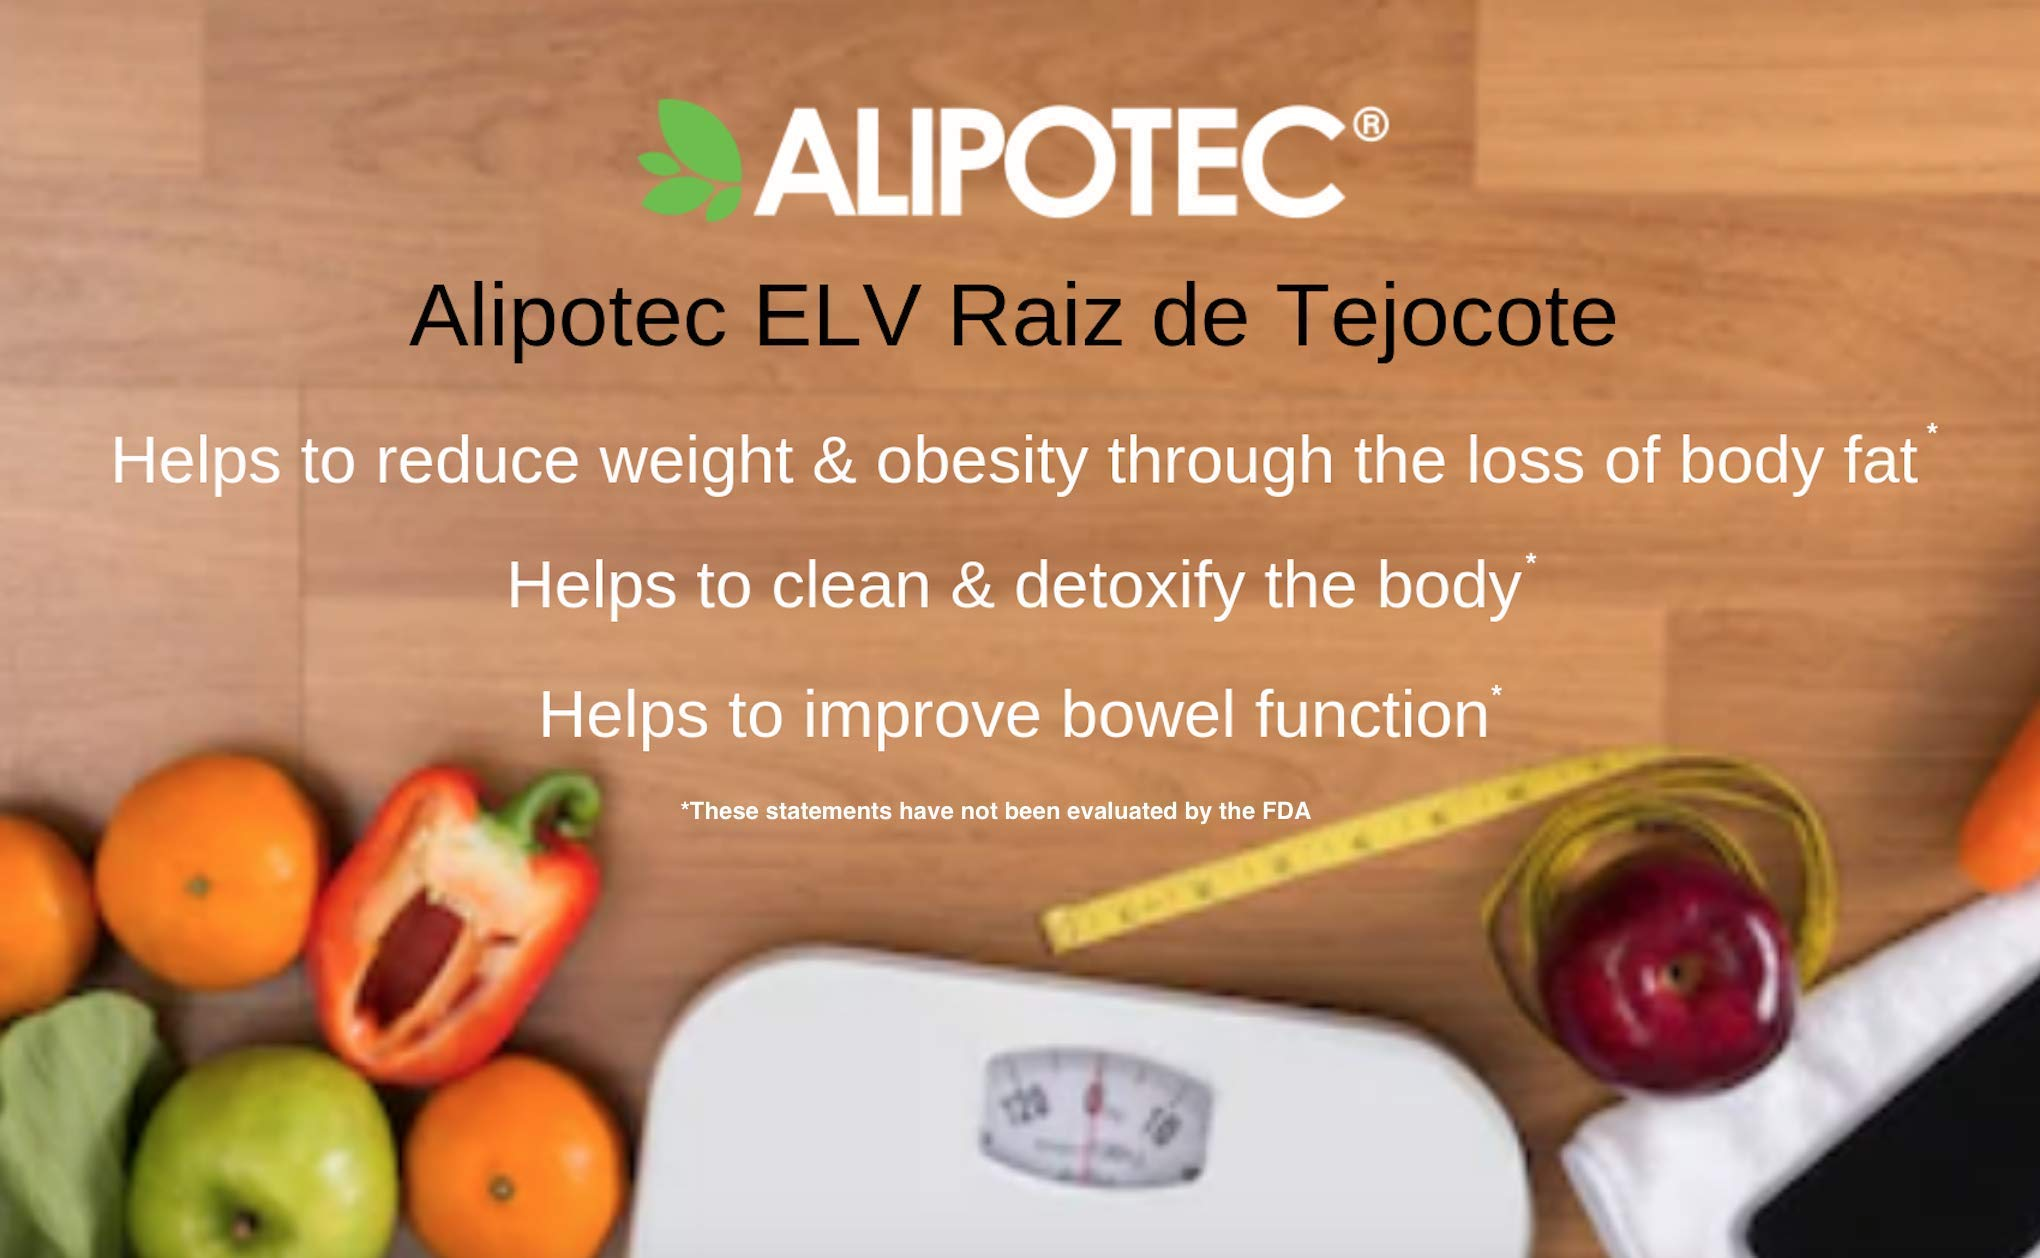 *Brand New Design* Original Elv Alipotec Tejocote Root Treatment - 1 Bottle (3 Month Treatment) - Most Popular, All-Natural Weight Loss Supplement in Mexico by Alipotec (Image #1)